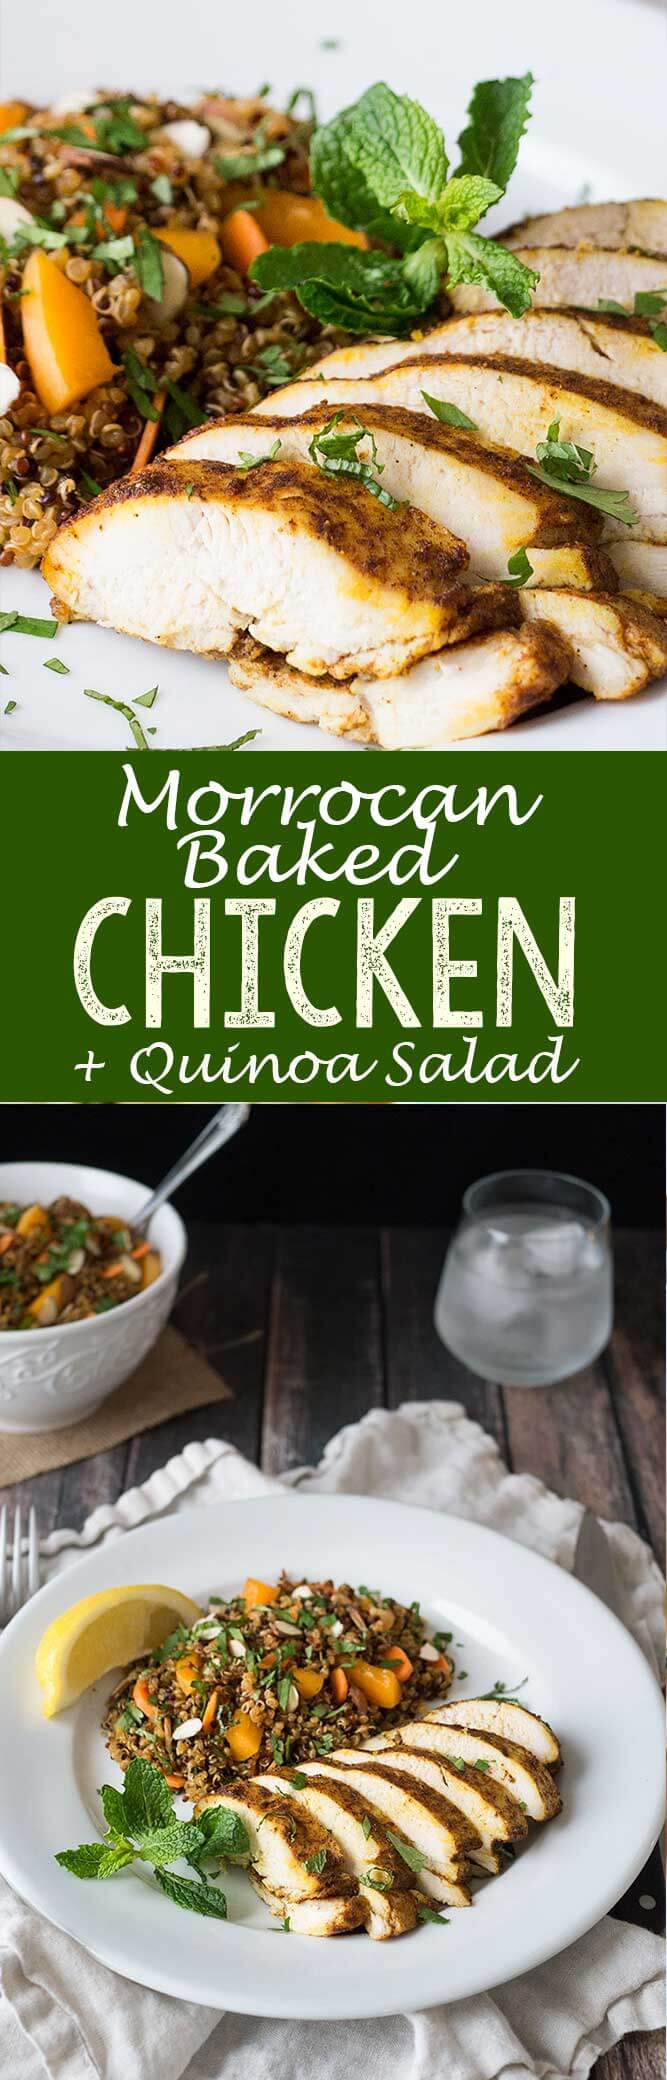 Flavorful morrocan baked chicken with a quinoa salad for the perfect meal